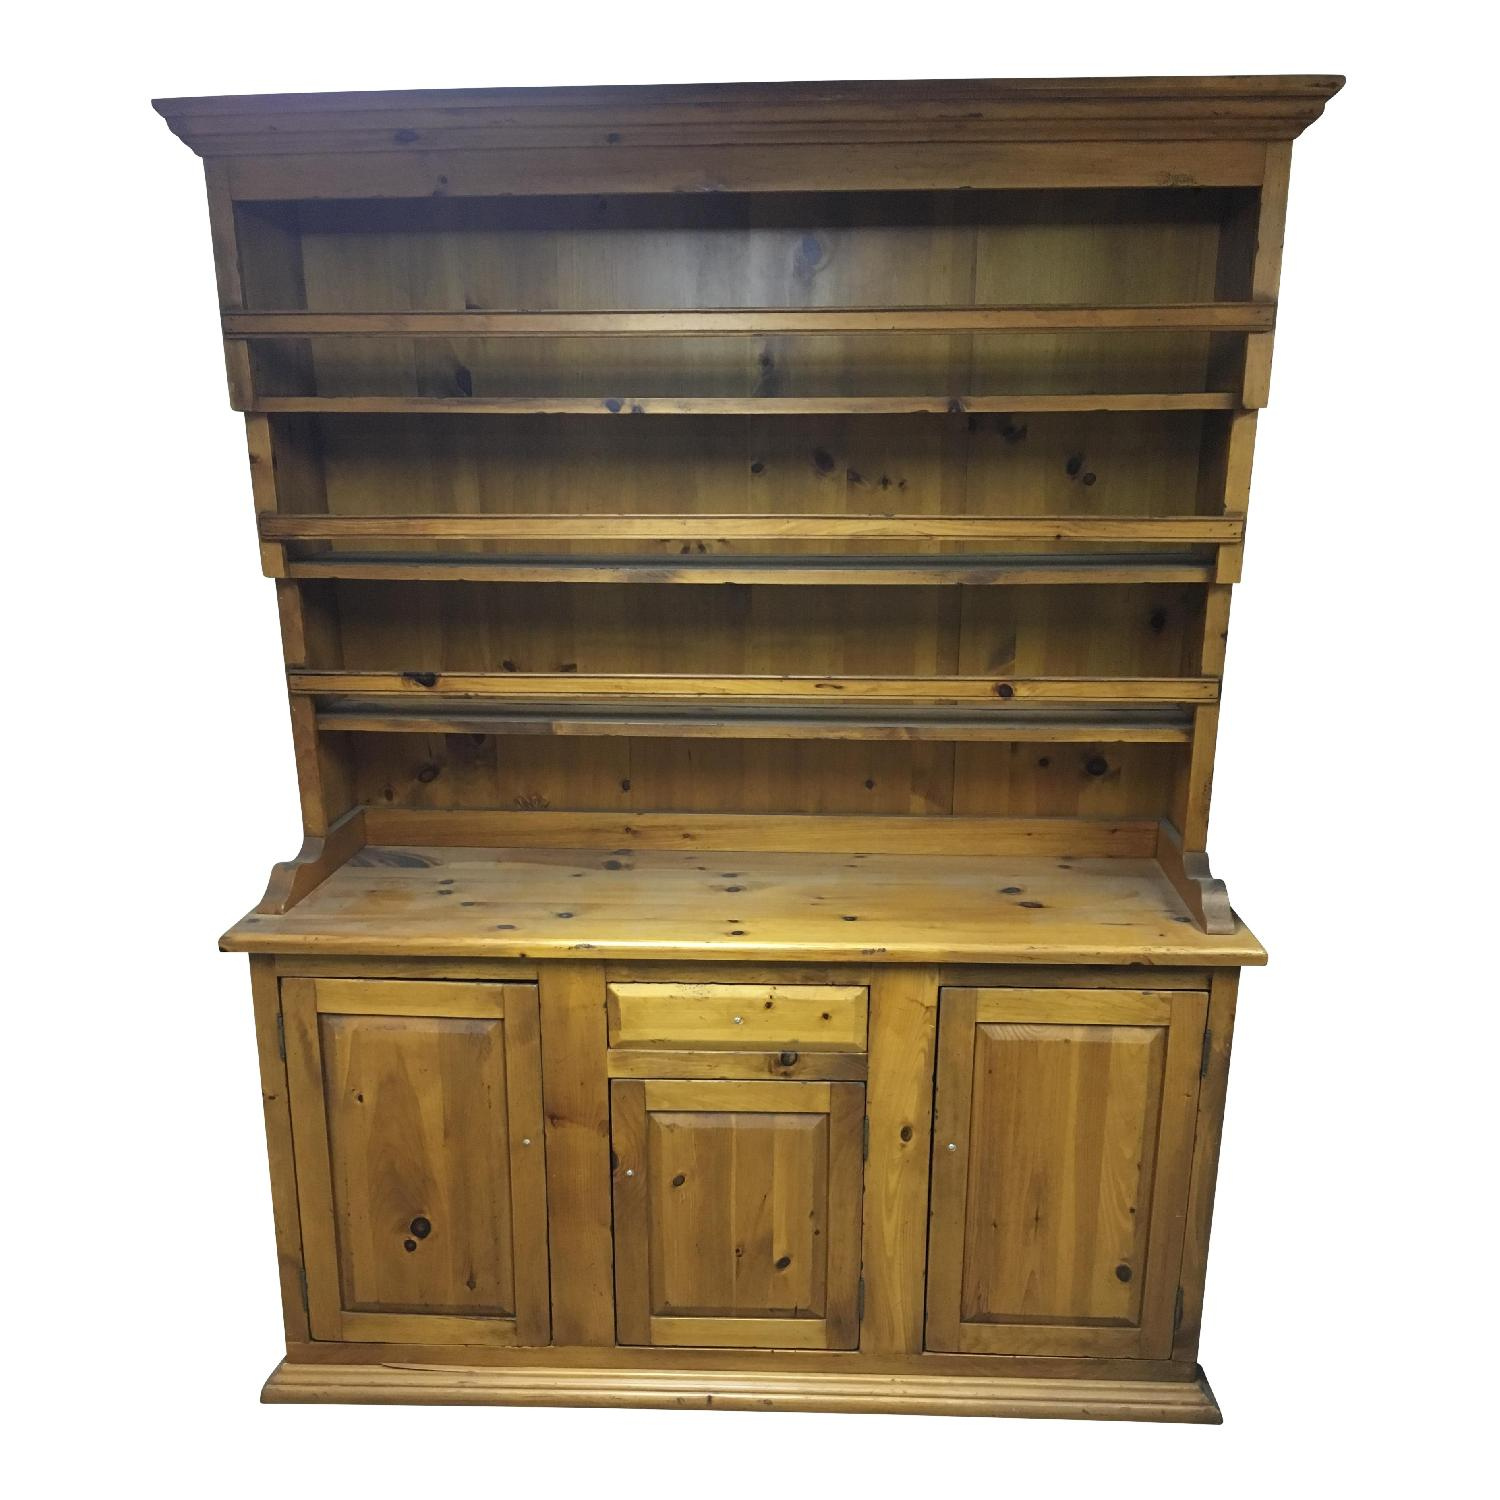 Antique Pine Welsh Kitchen Dresser & Display Hutch - image-0